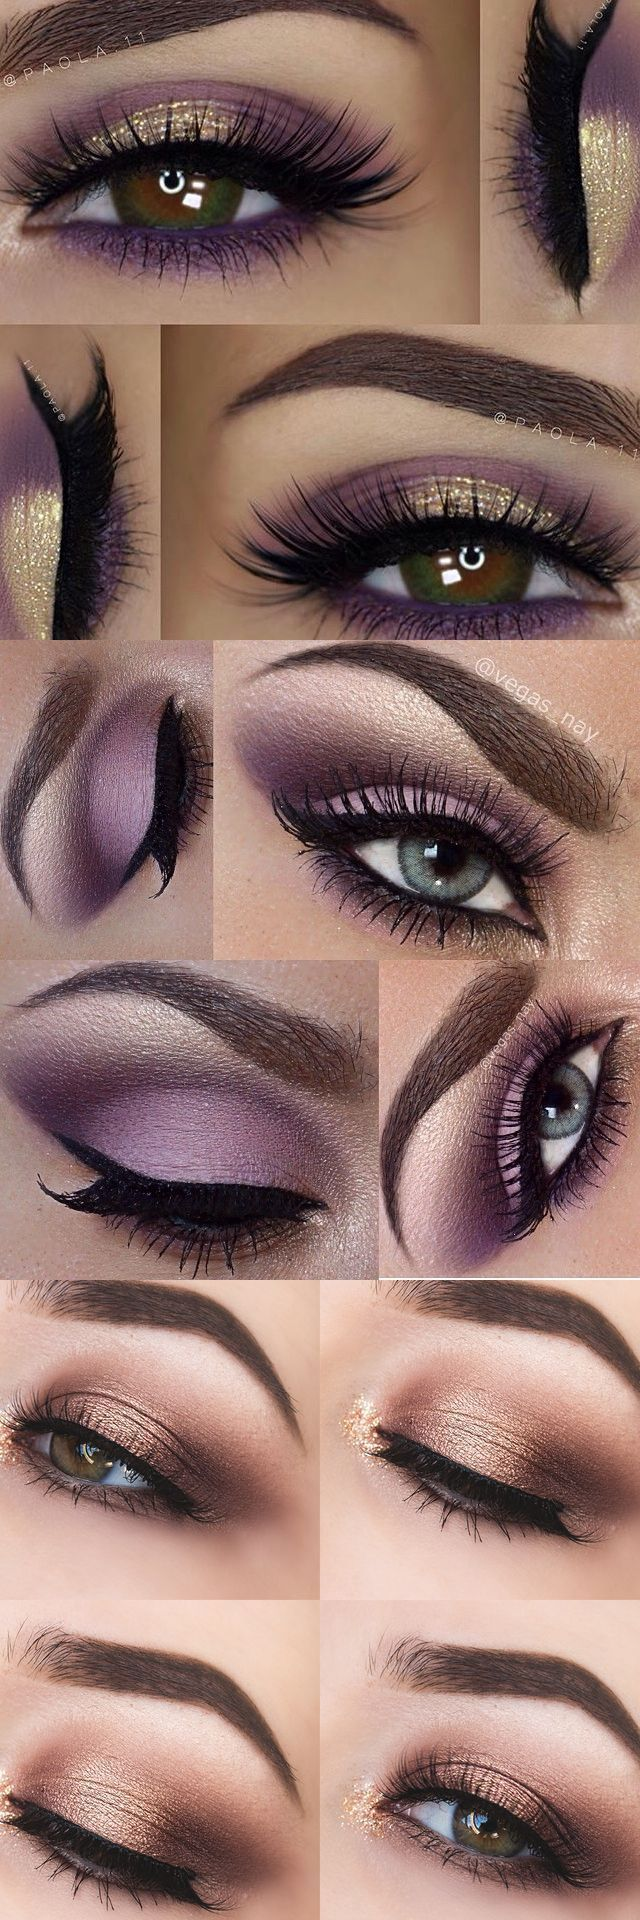 Pretty Purples https://www.youtube.com/channel/UC76YOQIJa6Gej0_FuhRQxJg #colorfuleyeshadows